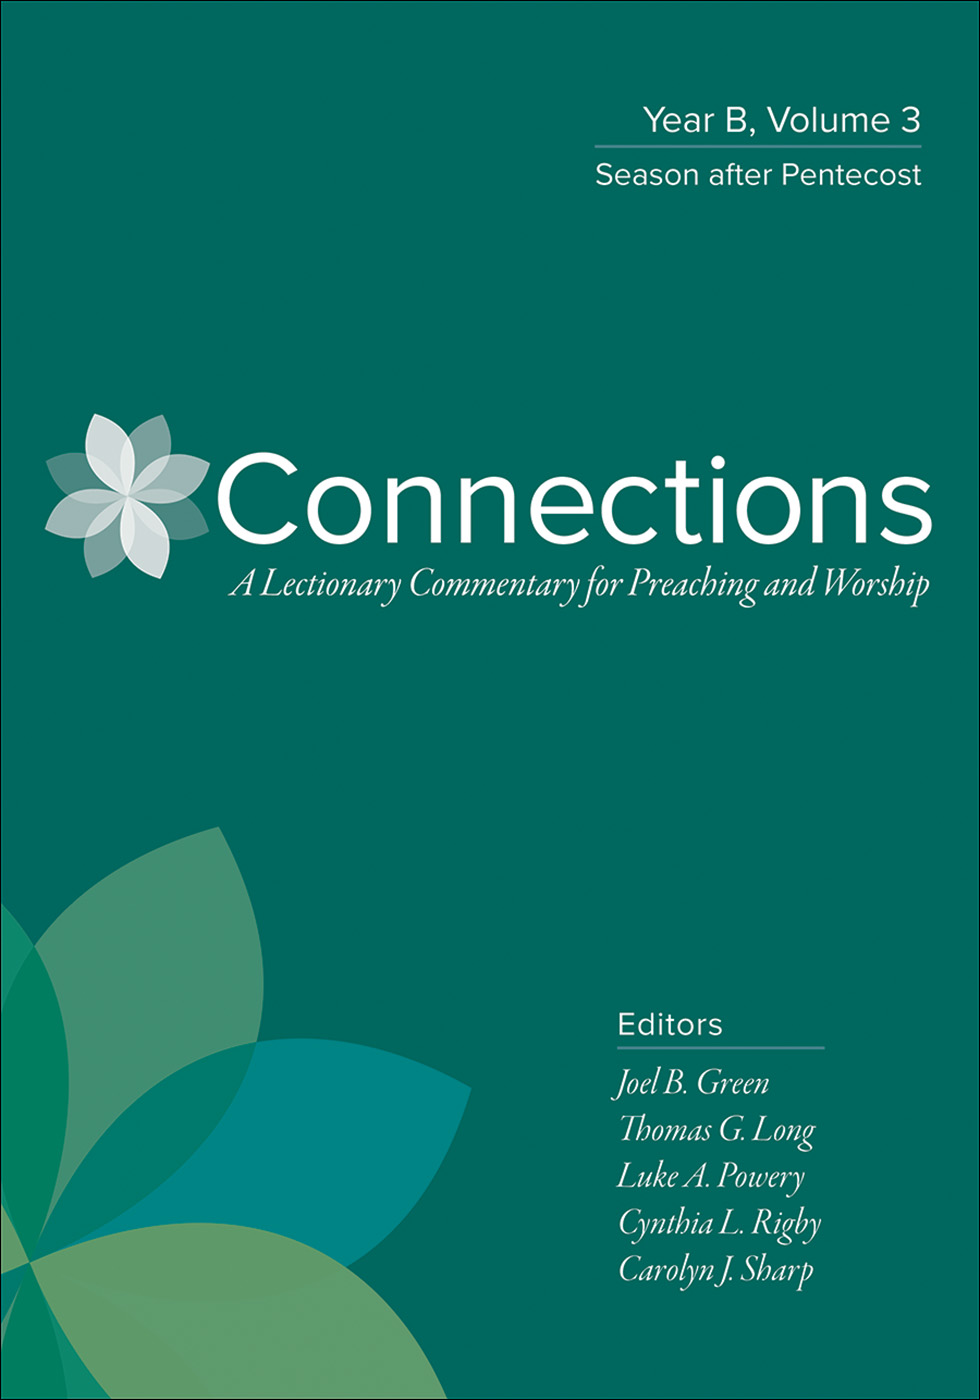 Connections: Year B, Volume 3